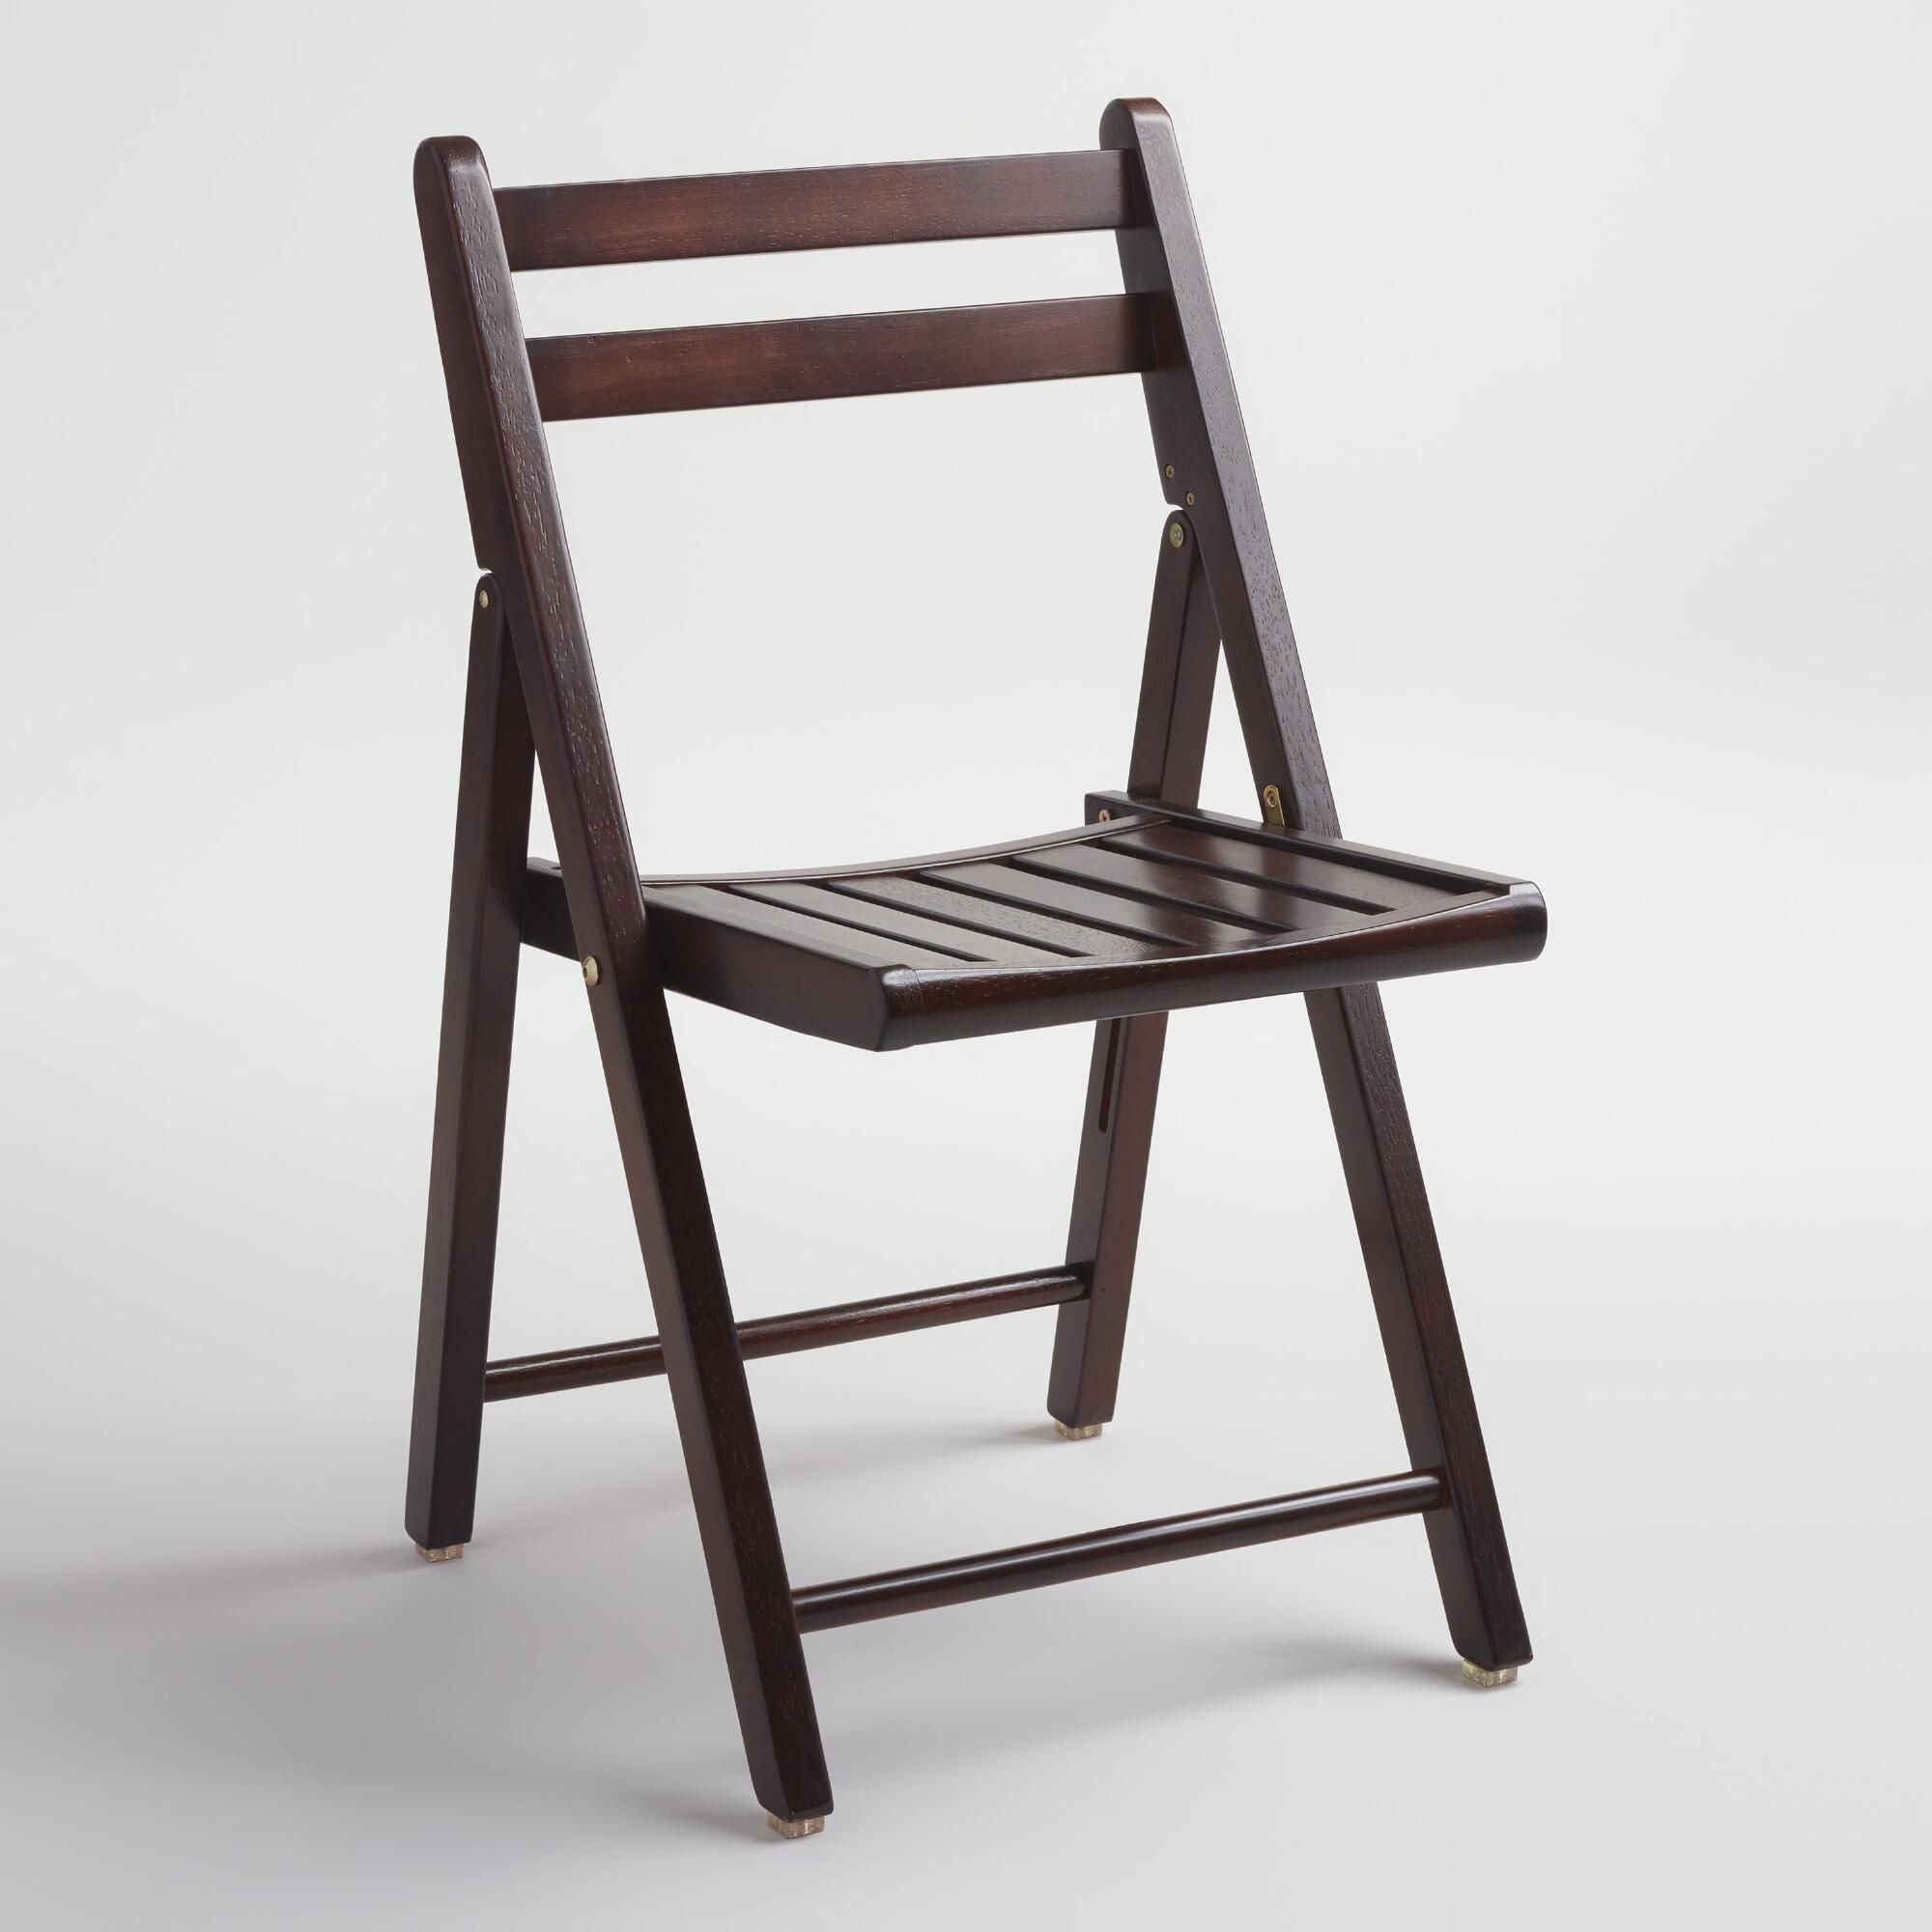 Espresso Wood Folding Chairs Set of 4